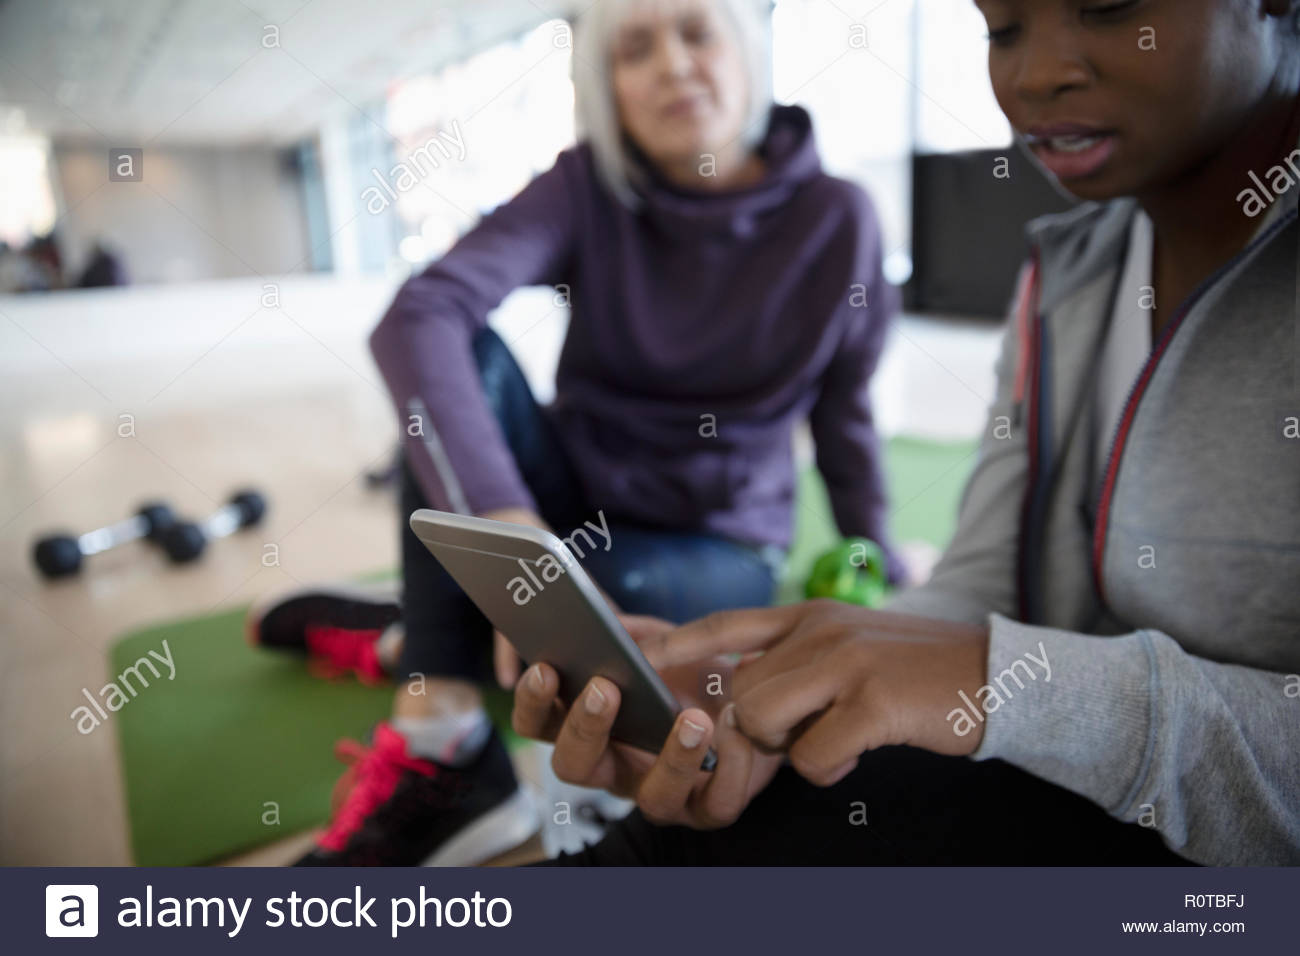 Frauen mit Smart Phone in der Turnhalle studio Stockbild